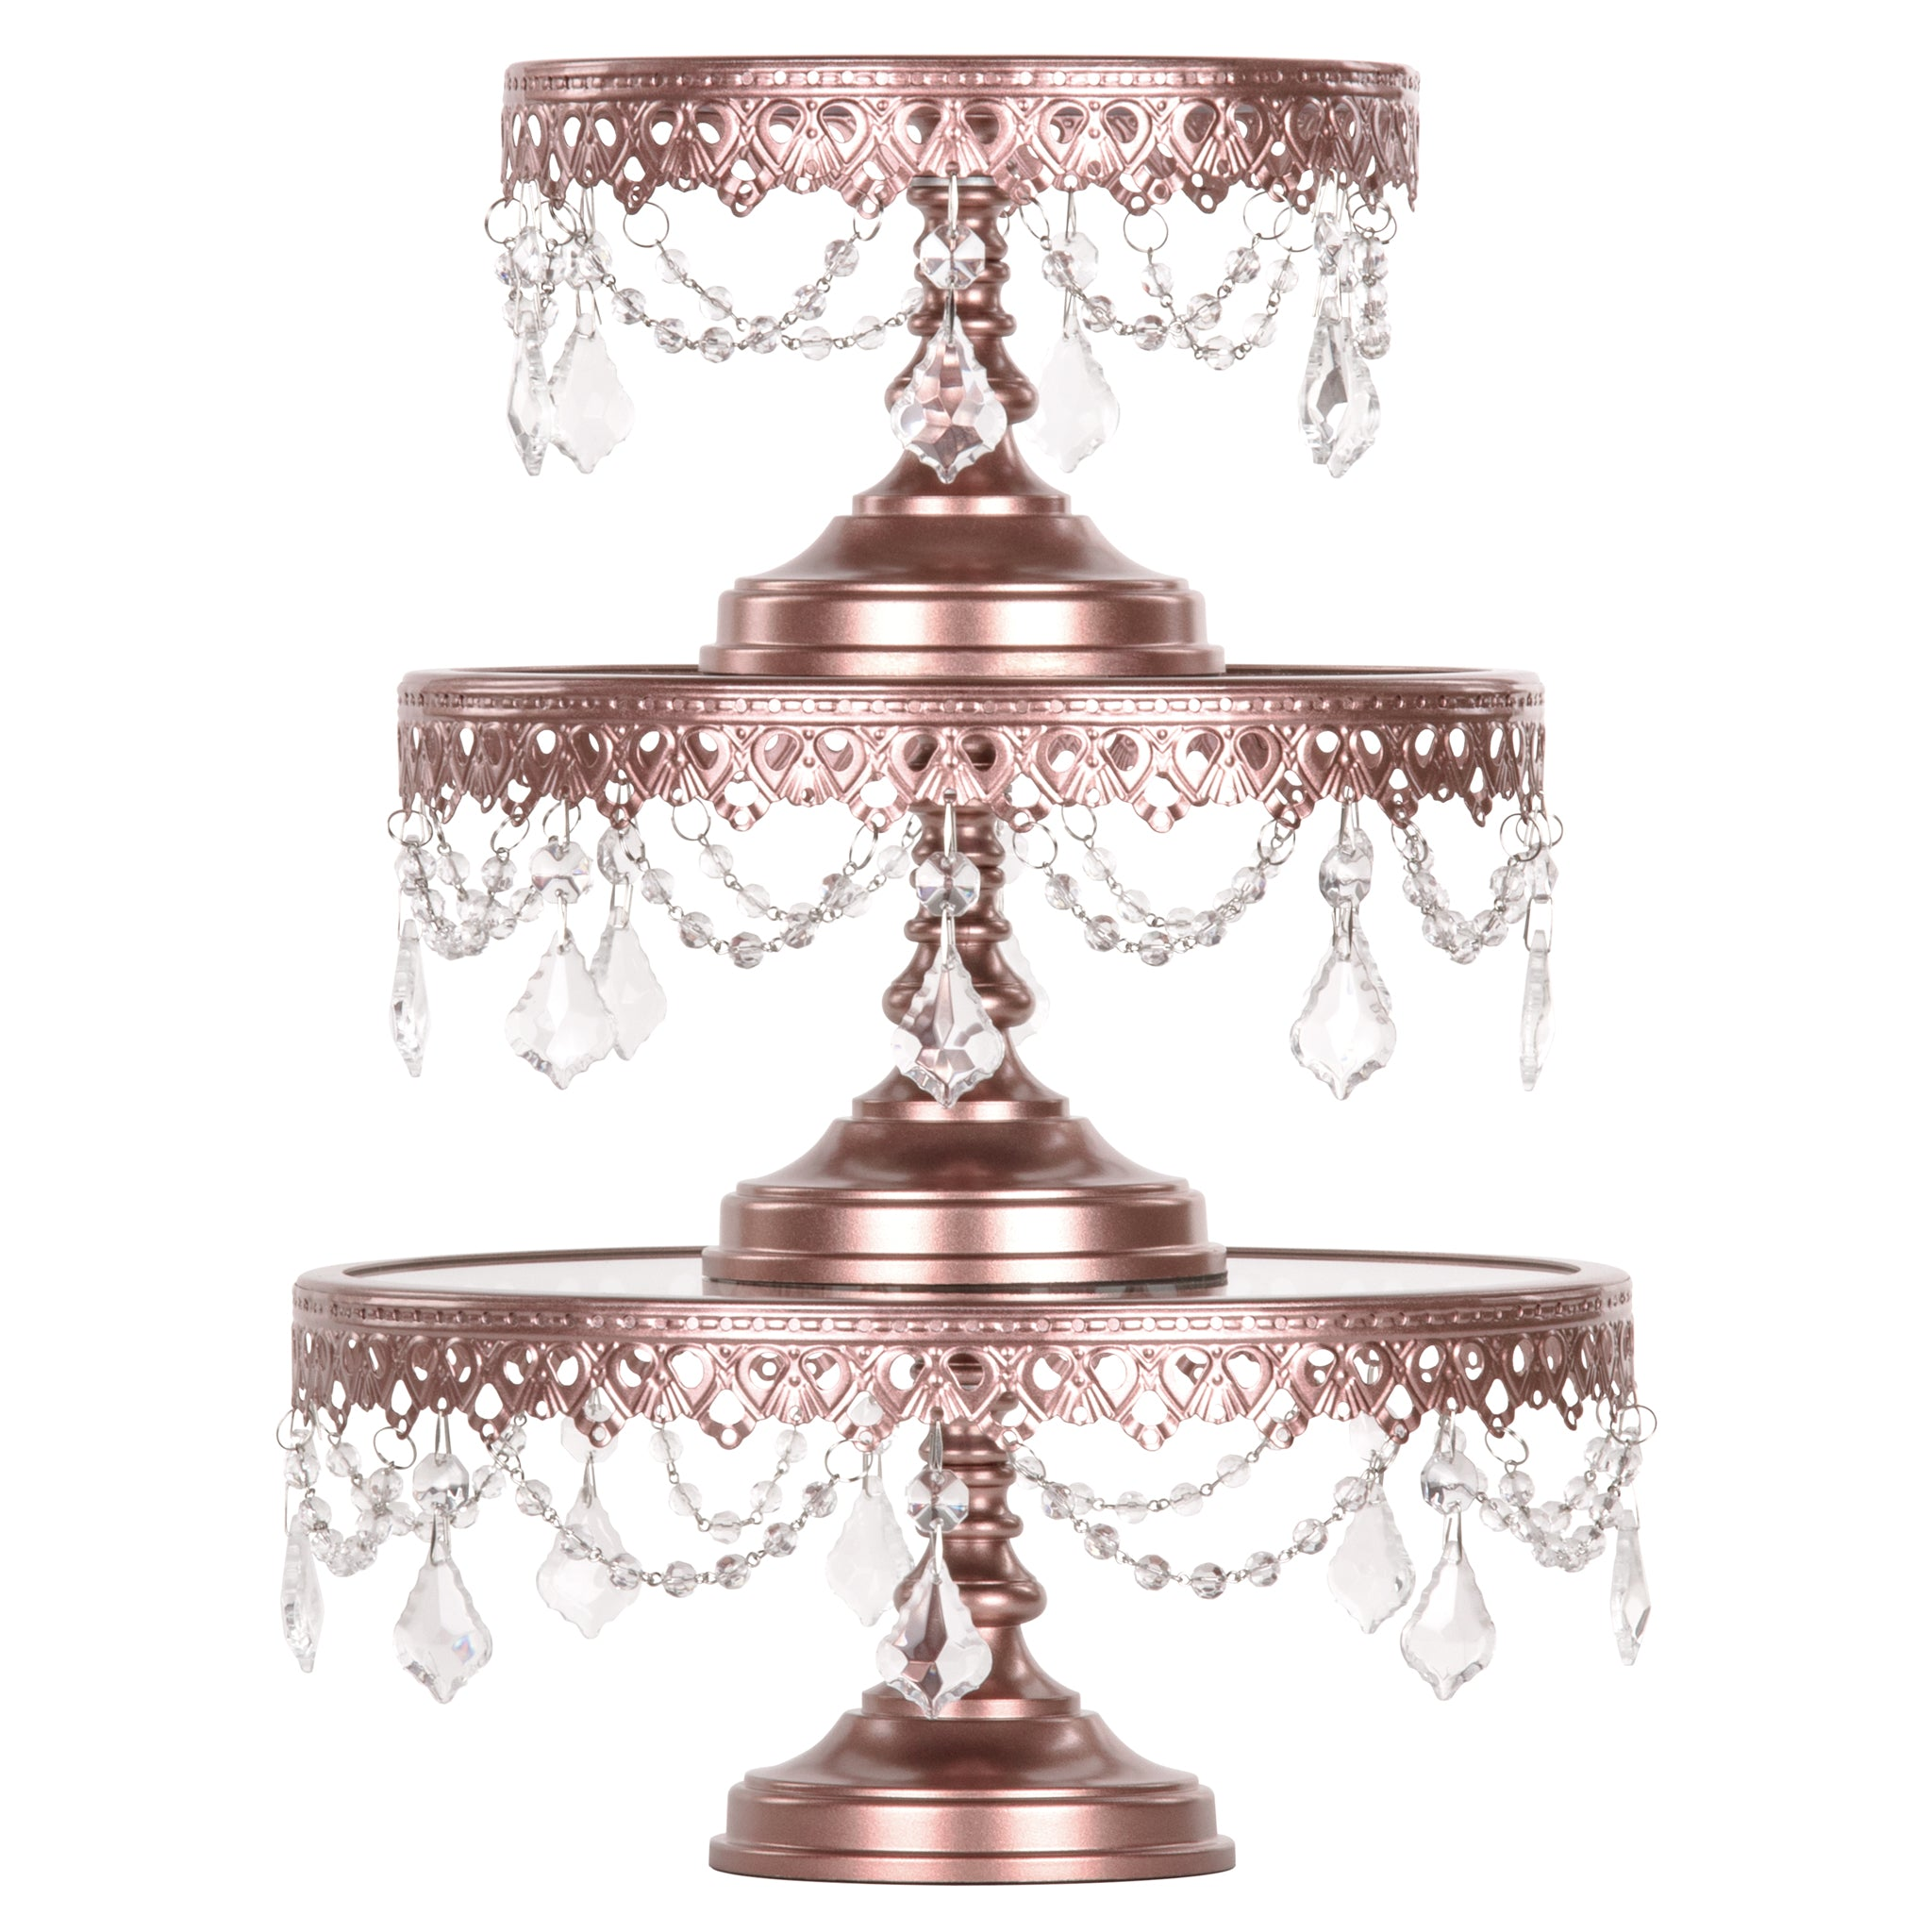 Amalfi Decor 3-Piece Glass Top Crystal Cake Stand Set (Rose Gold) | Stainless Steel Frame